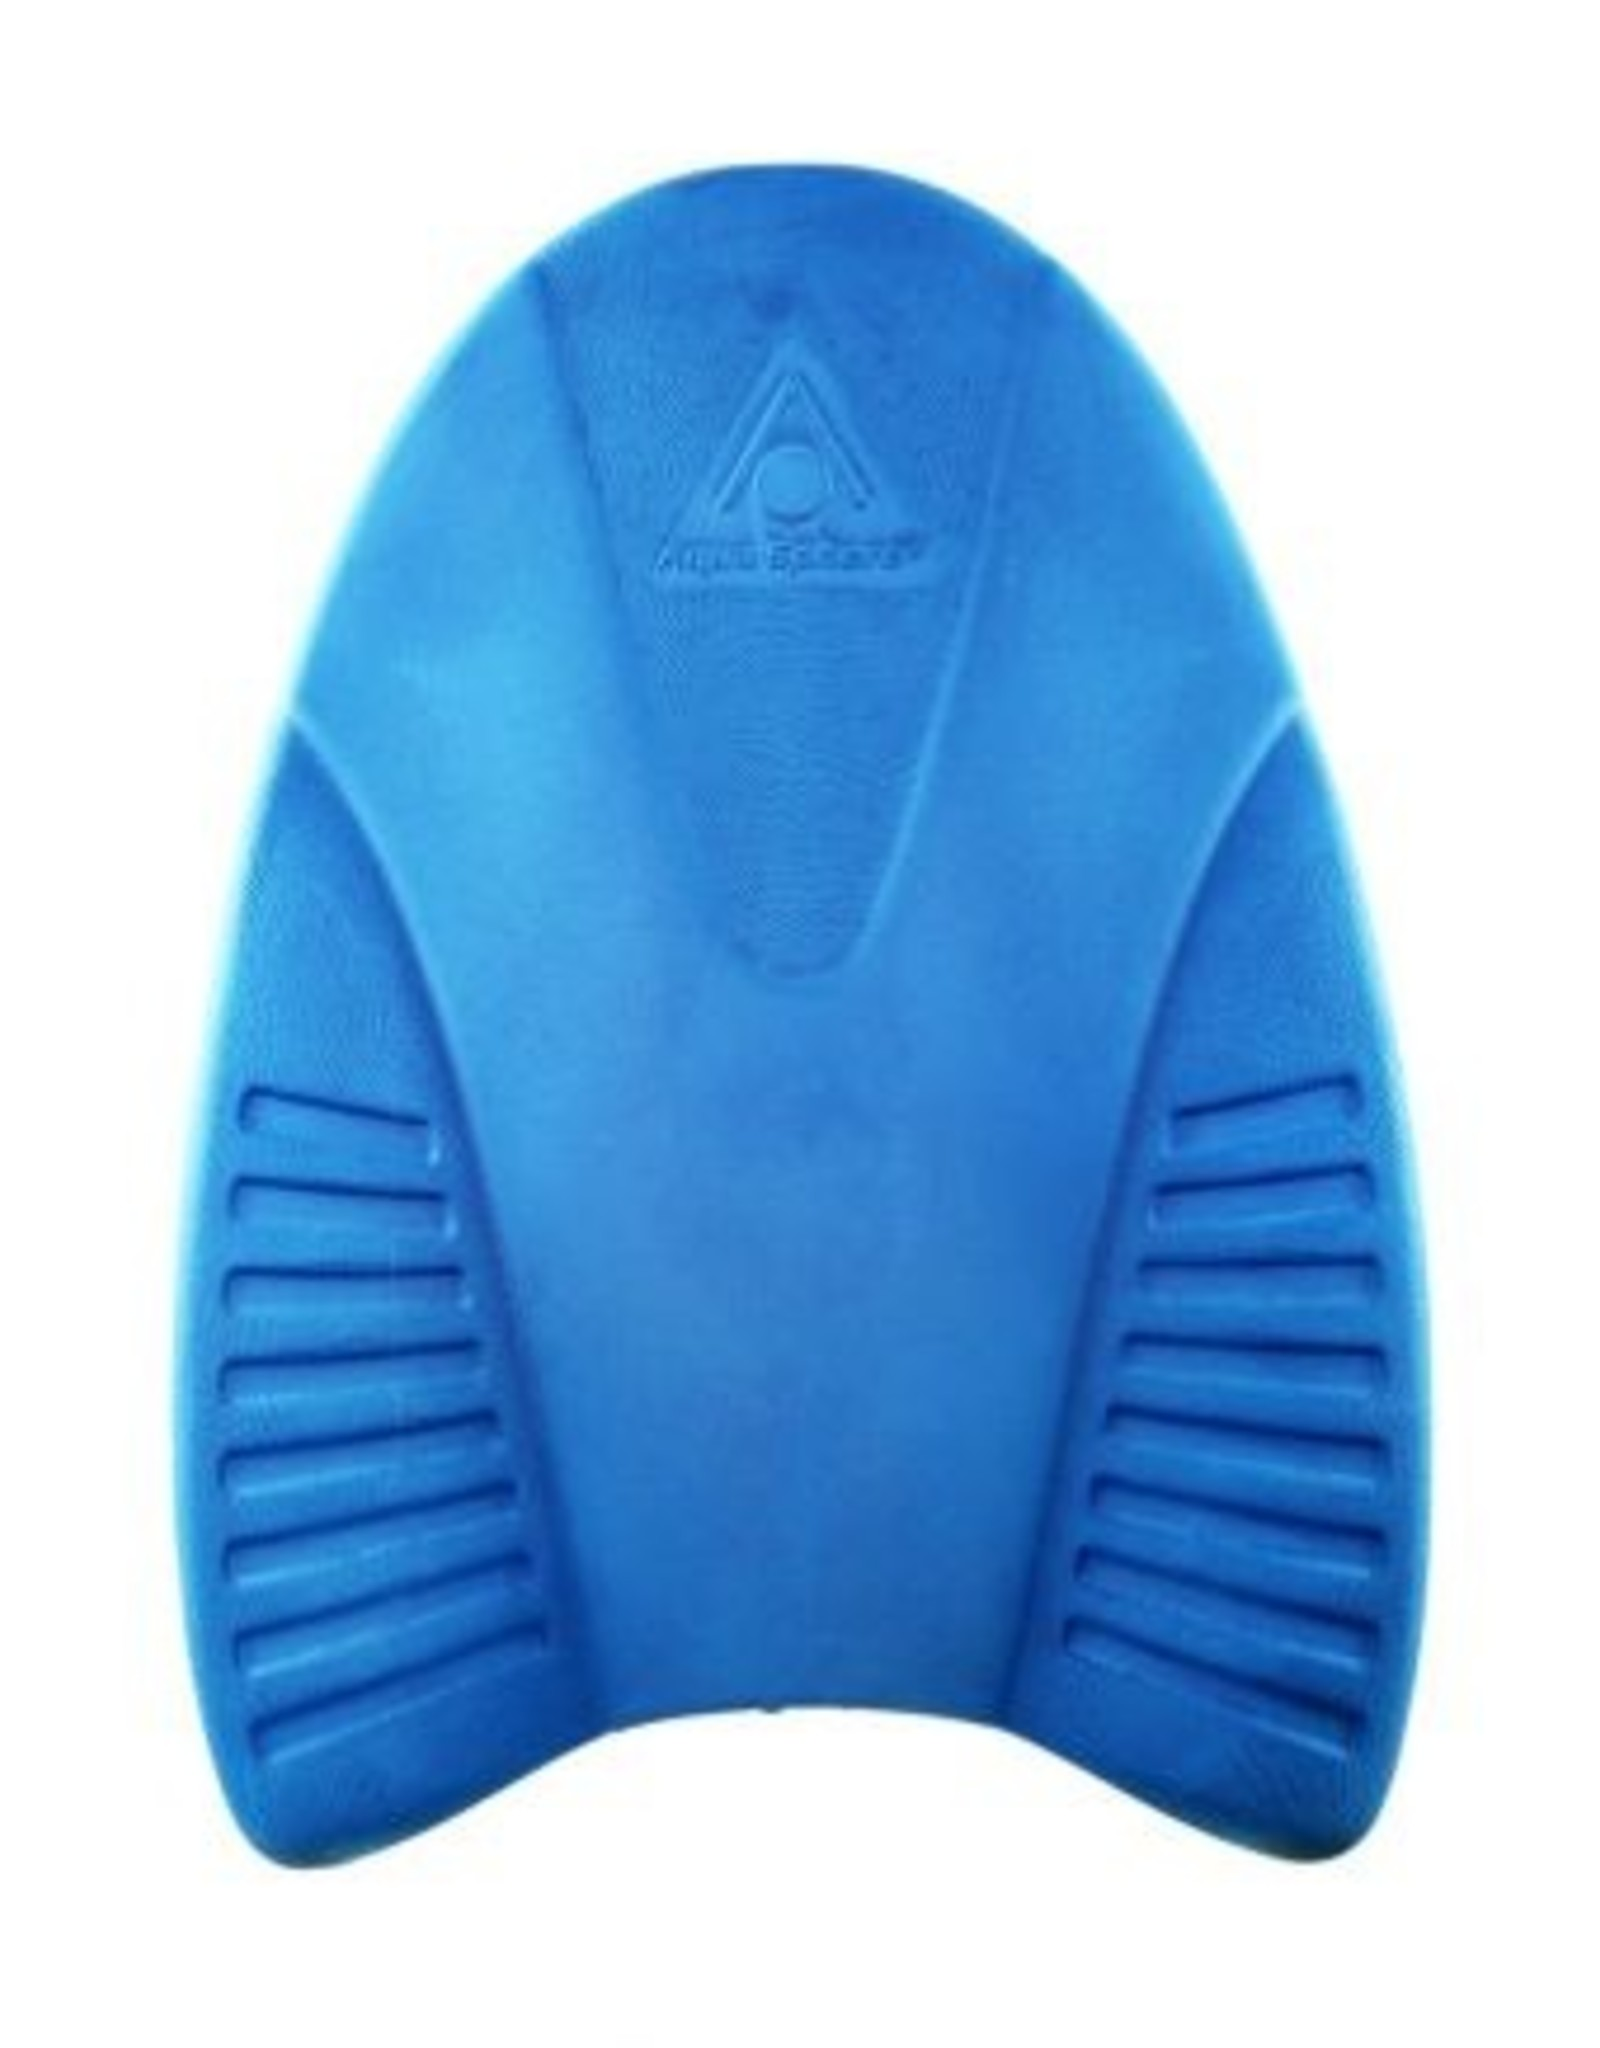 Aqua Sphere AquaSphere Classic Kick Board